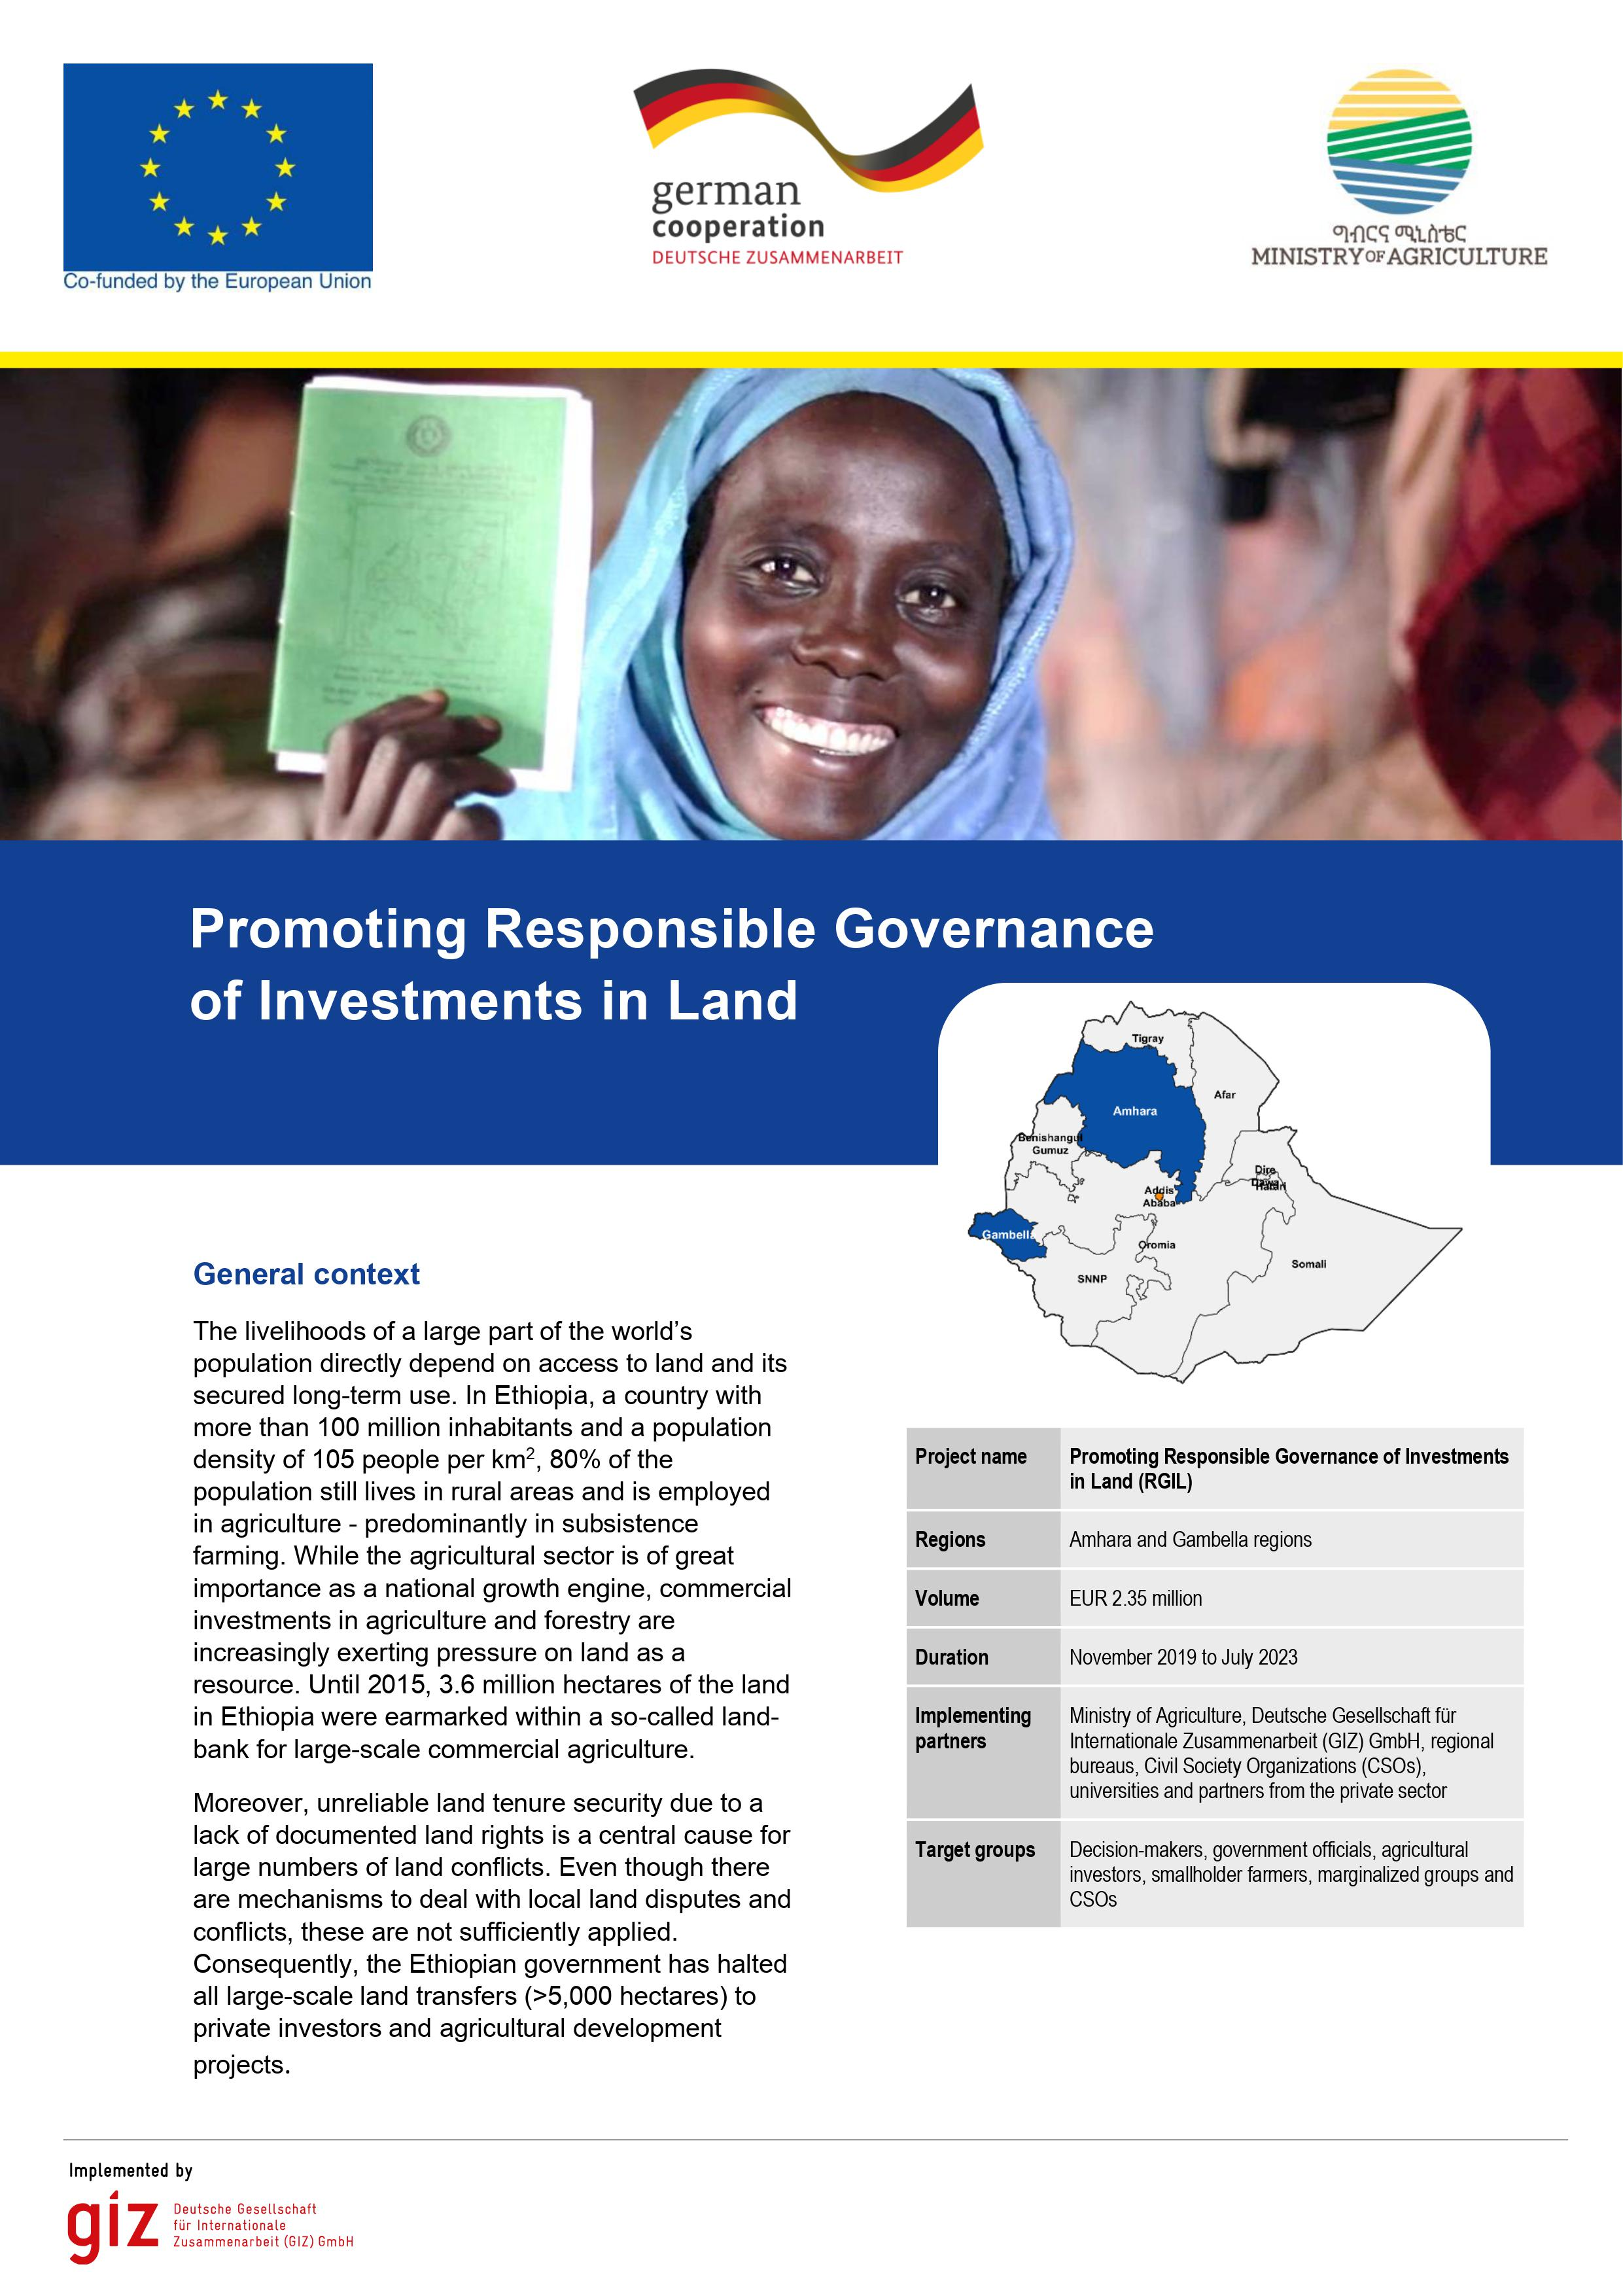 Promoting Responsible Governance of Investments in Land (RGIL) in Ethiopia